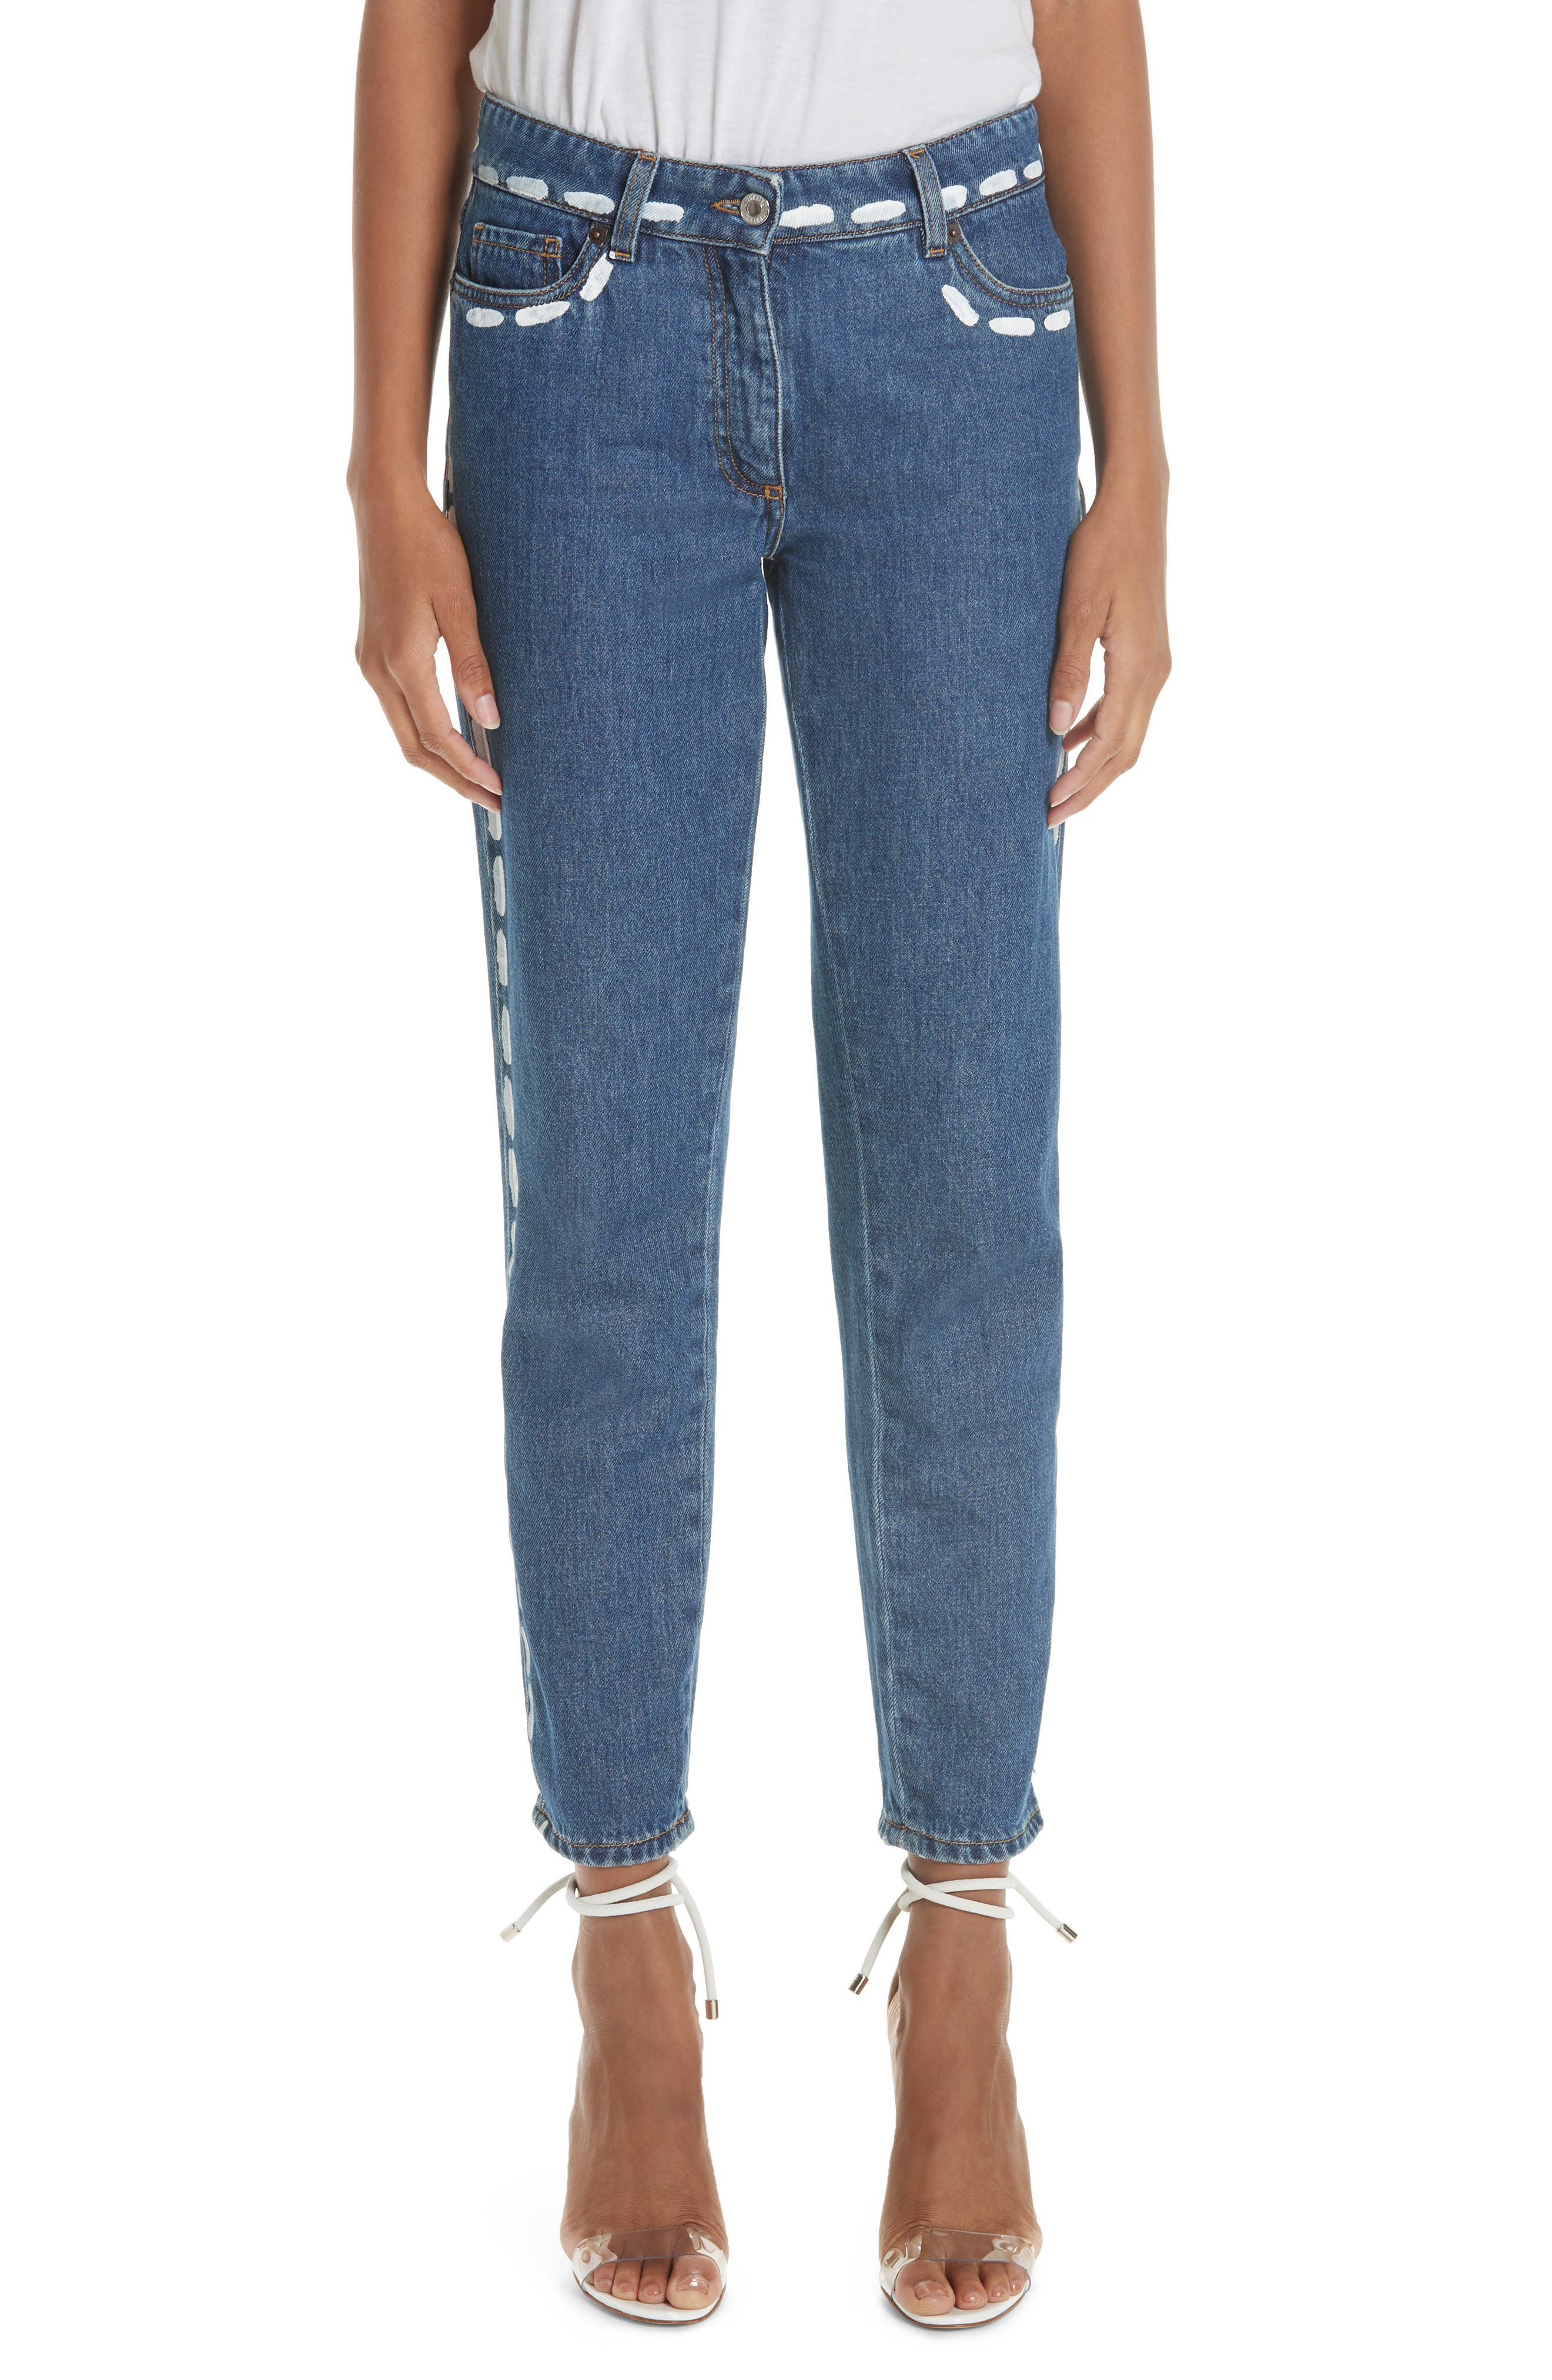 MOSCHINO Dotted Line Straight Leg Jeans, Main, color, DENIM